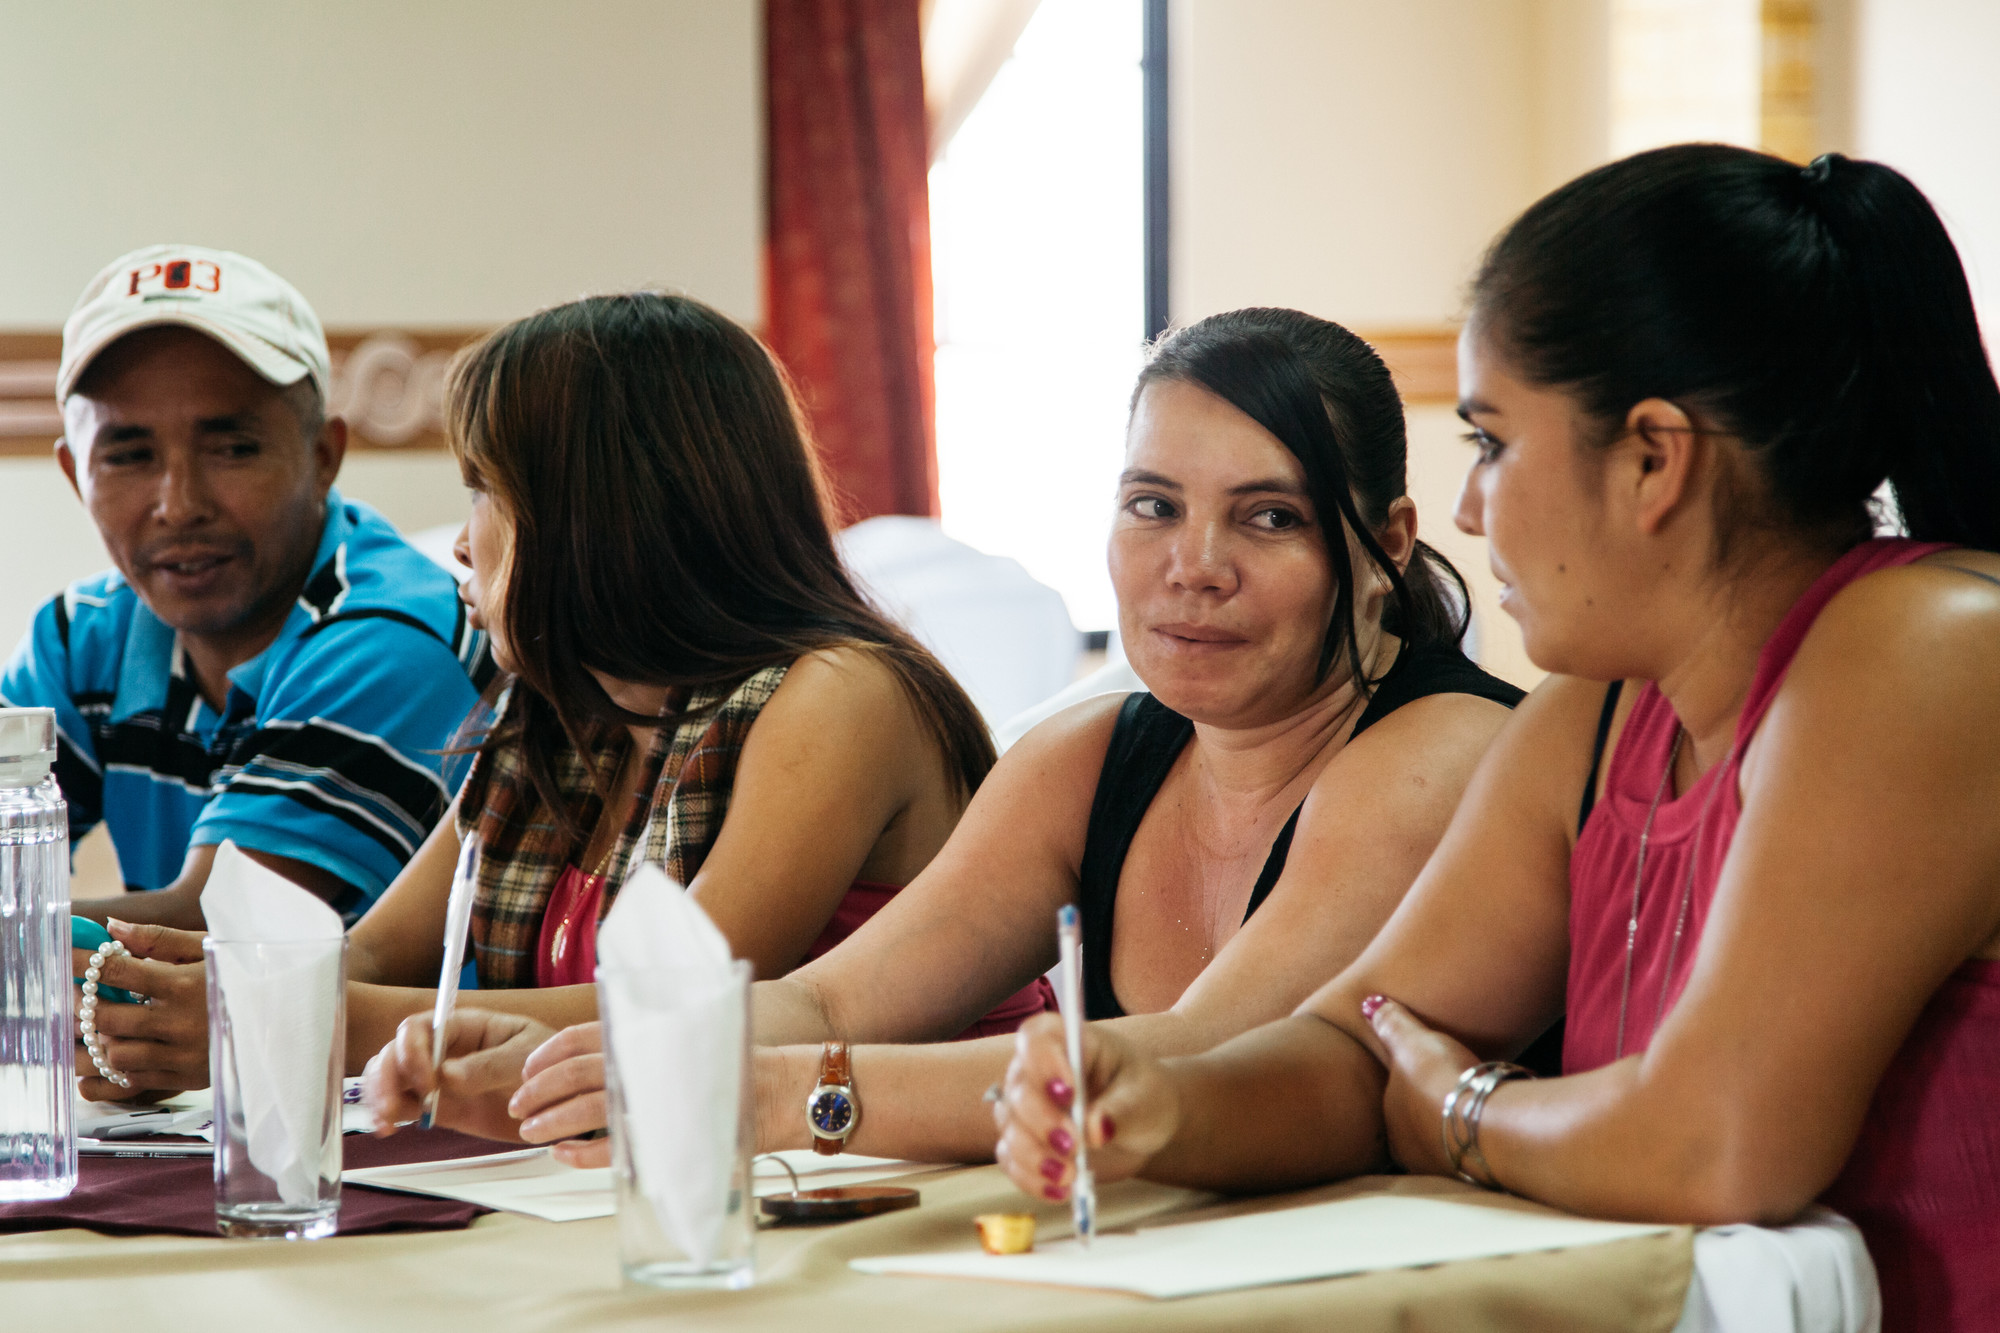 Men and women take part in a workshop together in the city of Santa Rosa de Copan.